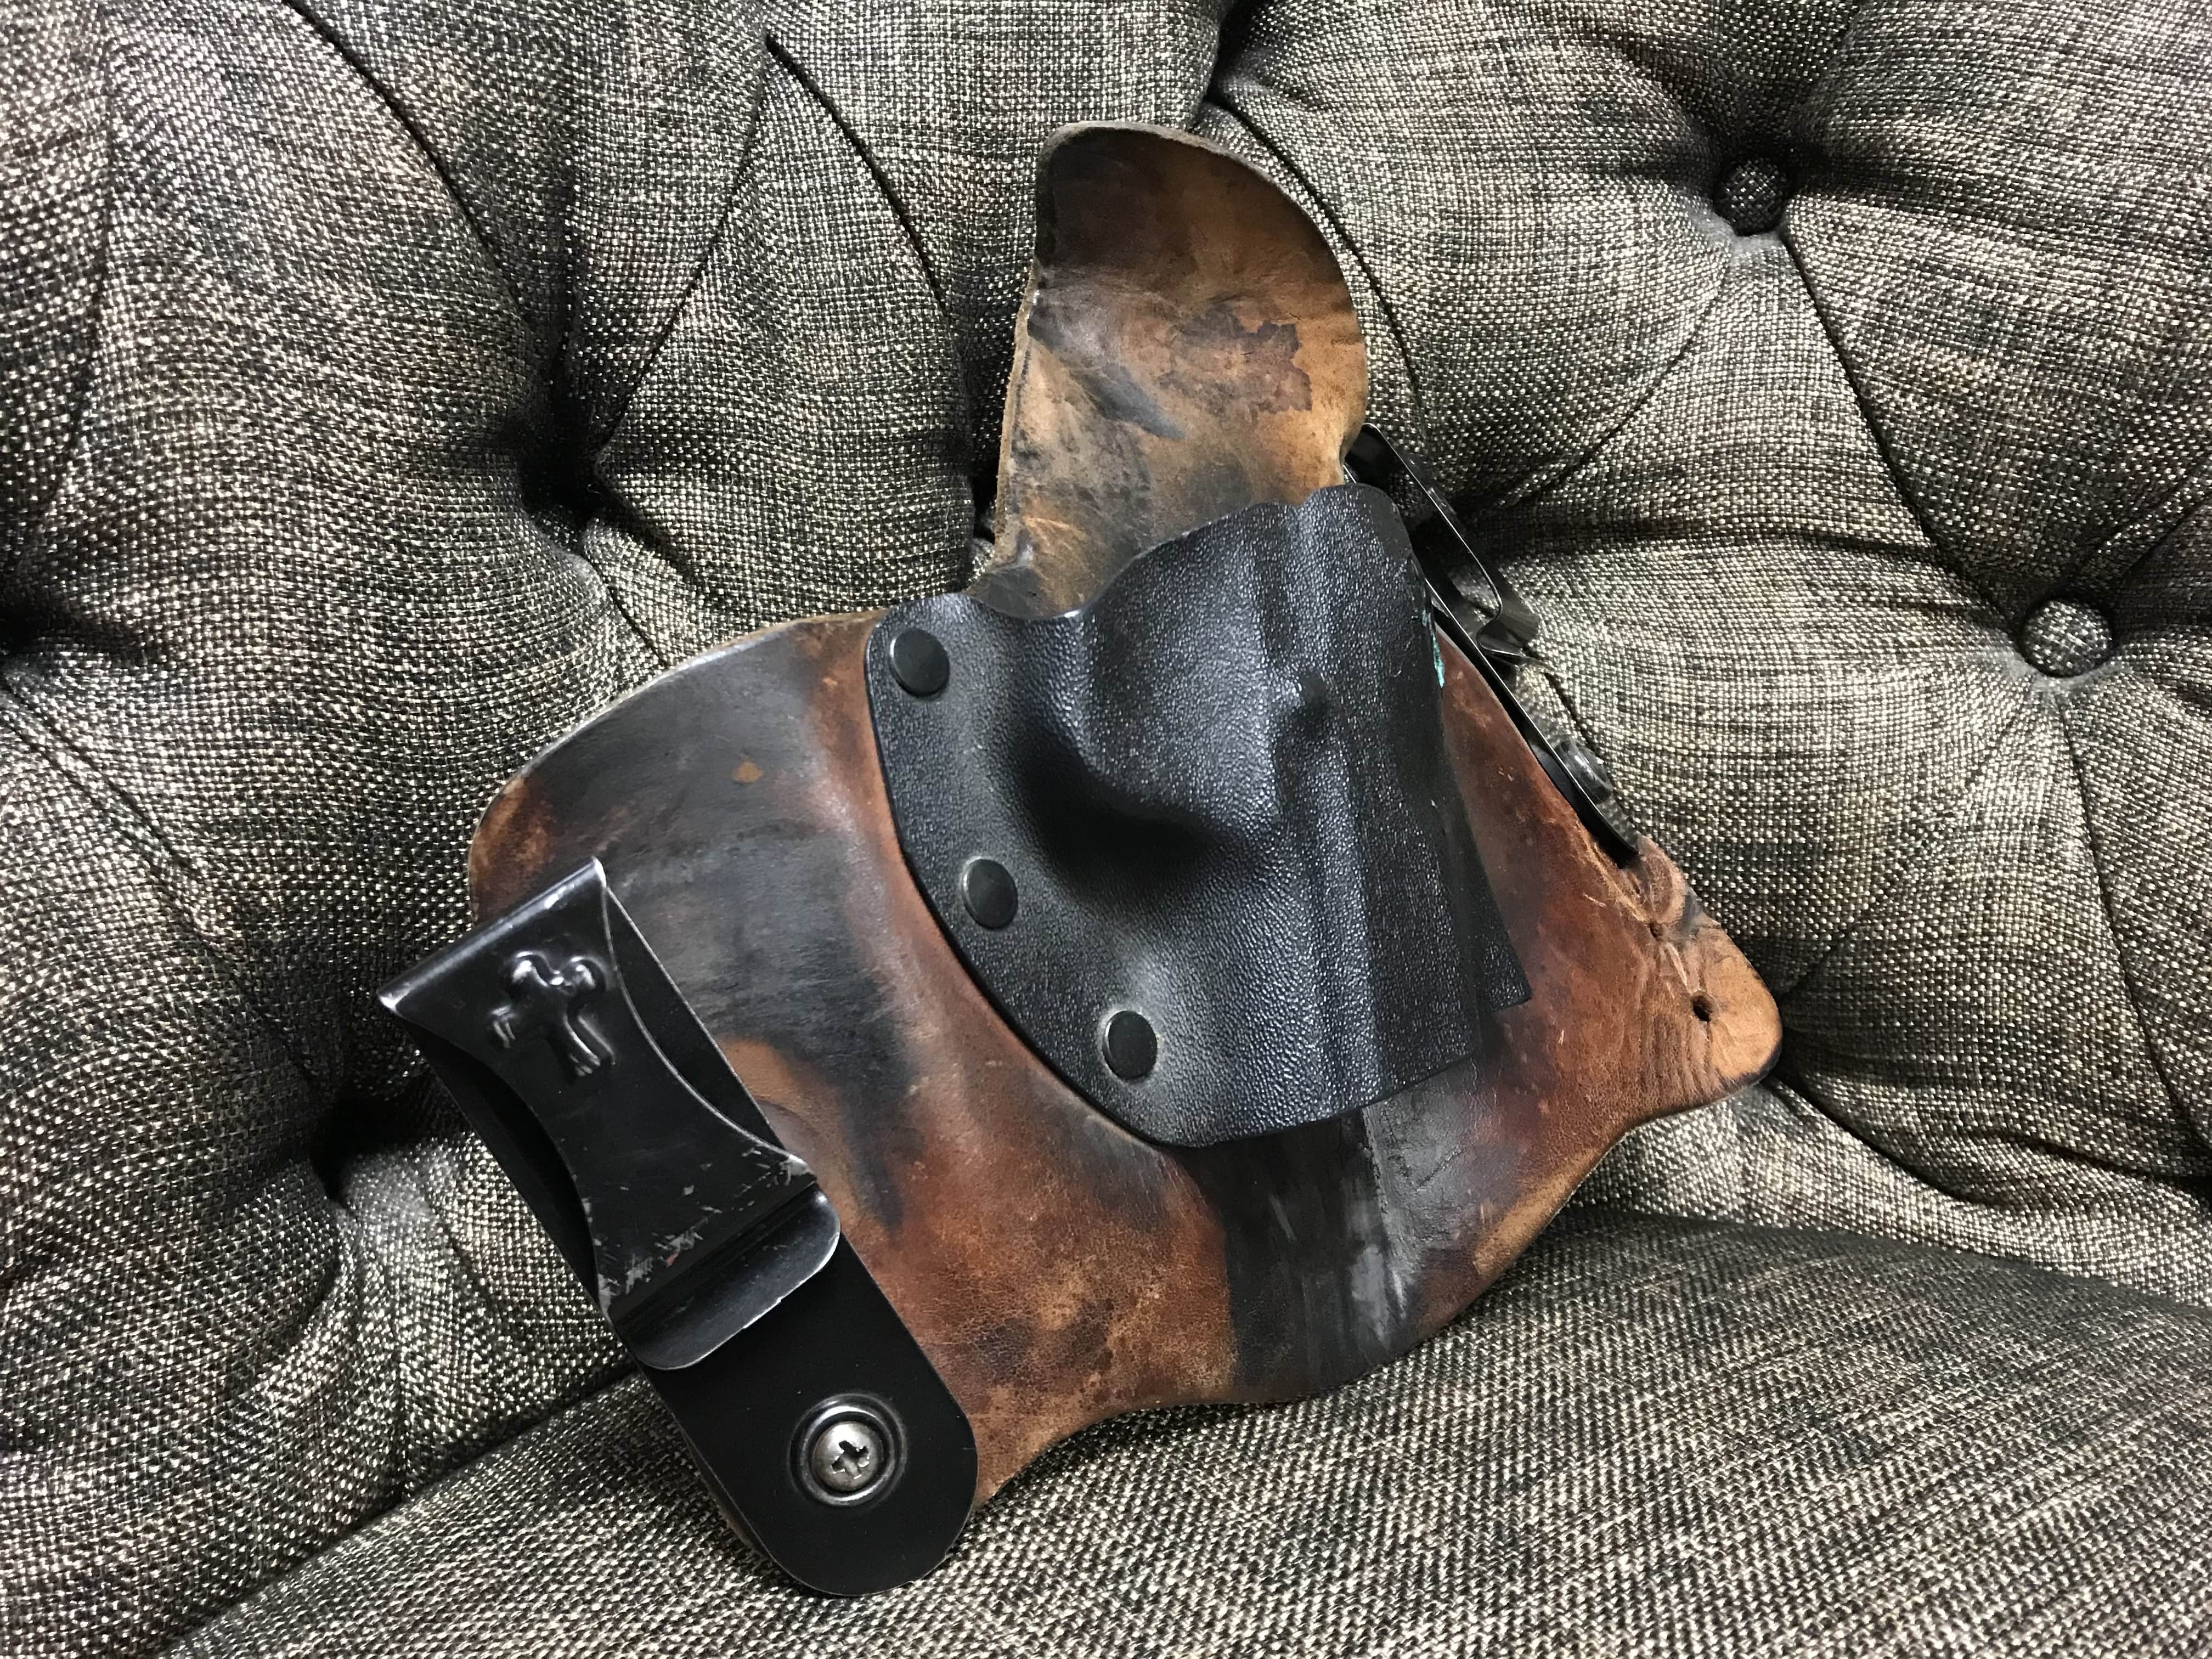 hybrid holsters, EDC, everyday carry, CrossBreed Holsters, product review, SuperTuck, MiniTuck, best concealed carry holster, holster, holsters, IWB, OWB, best holster, lifetime warranty, made in america, handcrafted, gun reviews, best holster for,